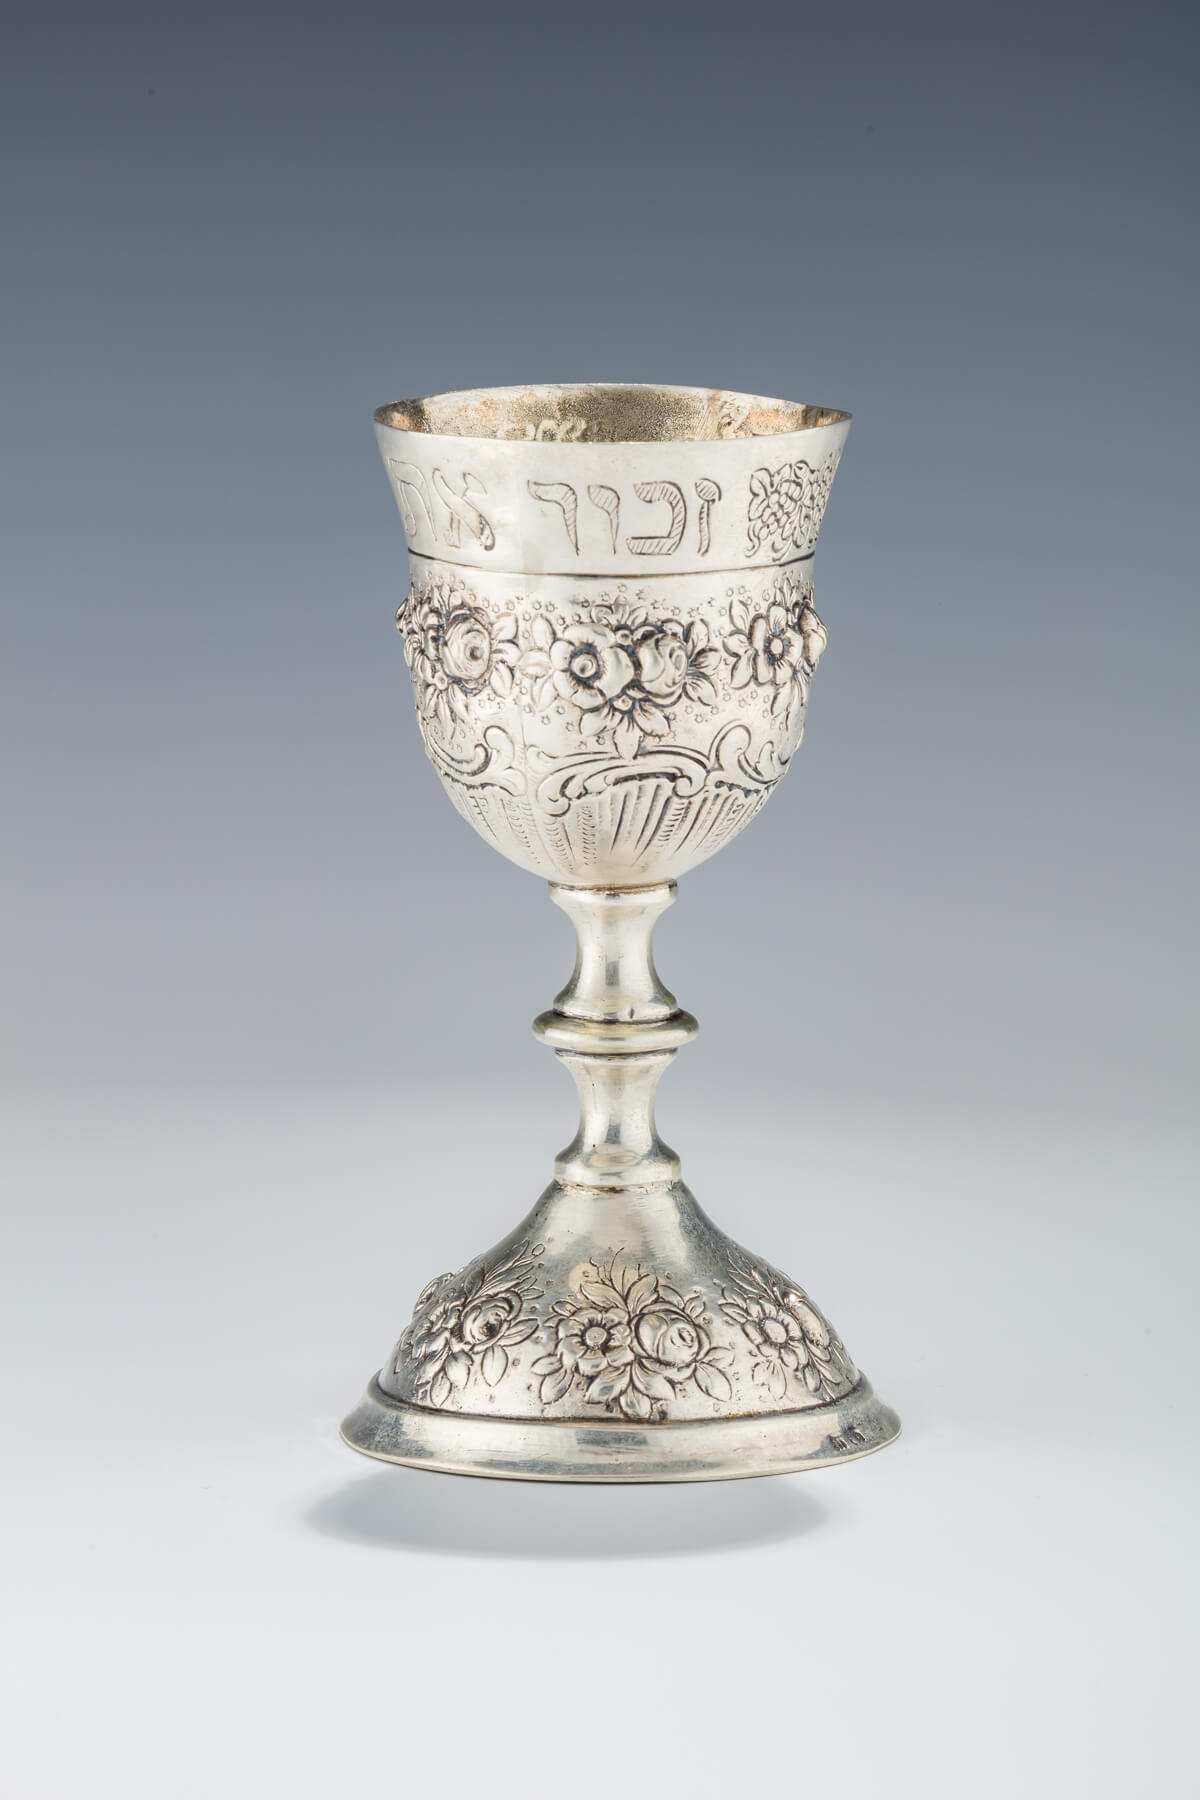 002. A Large Silver Kiddush Goblet